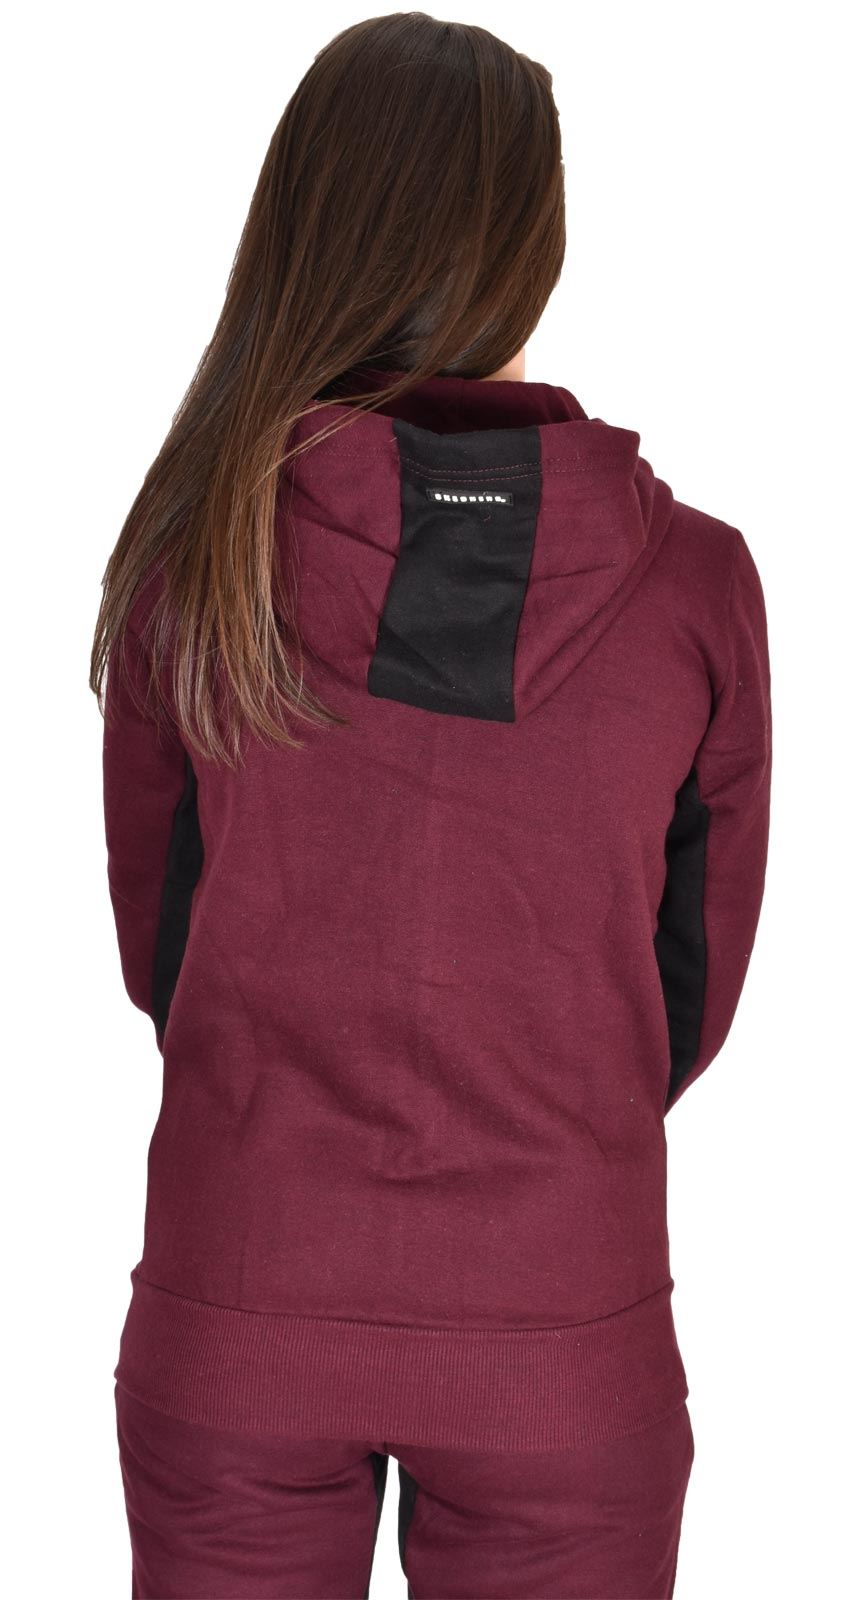 Skechers Womens Hoodie Zip Up